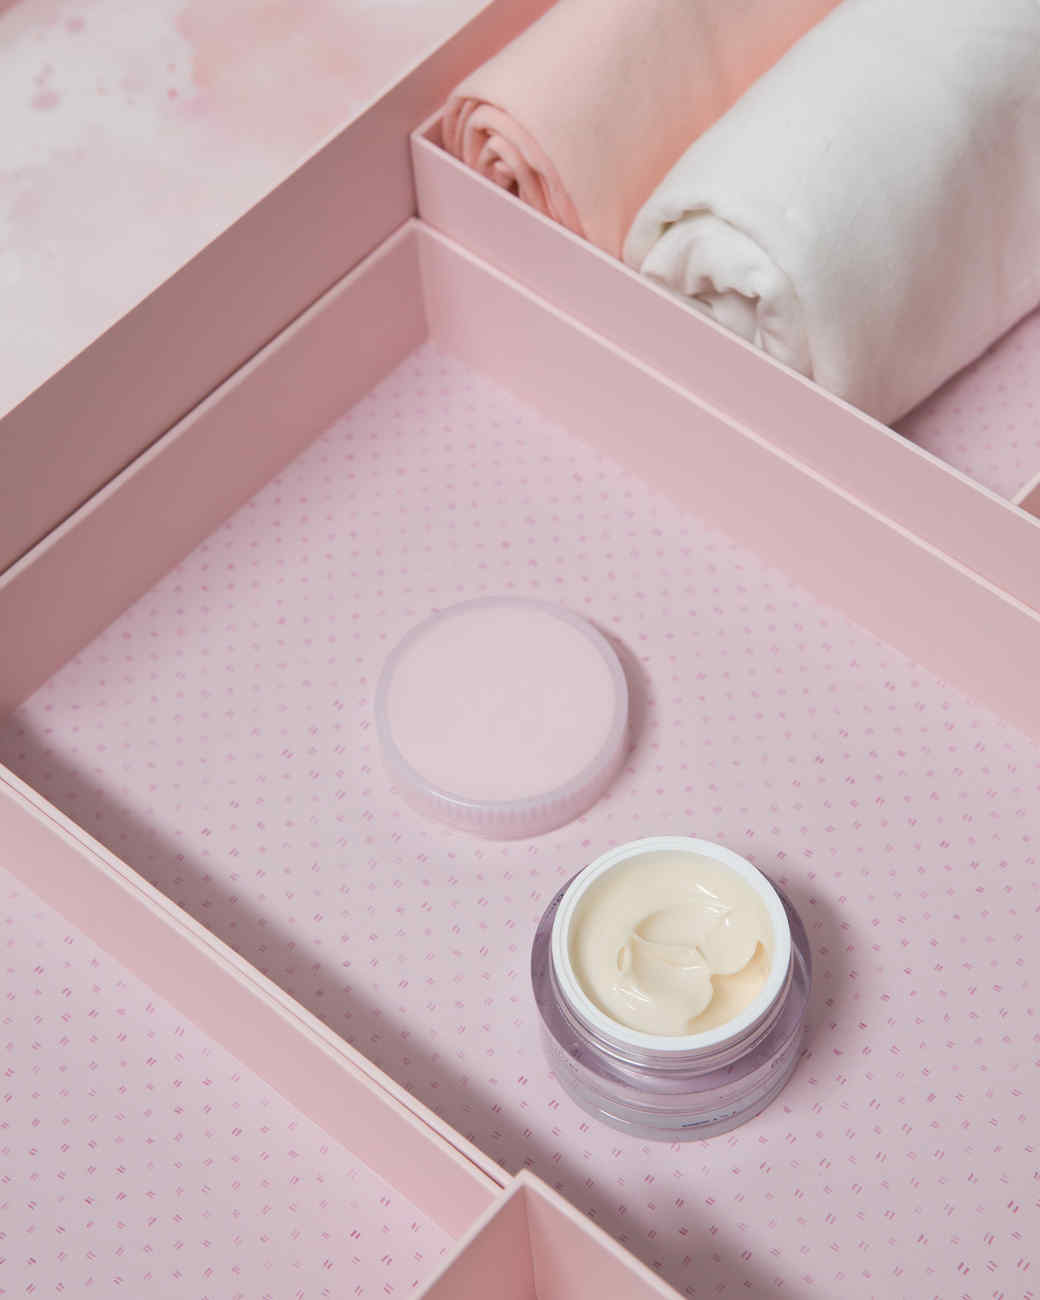 pink marie kondo box holding makeup and rolled clothes